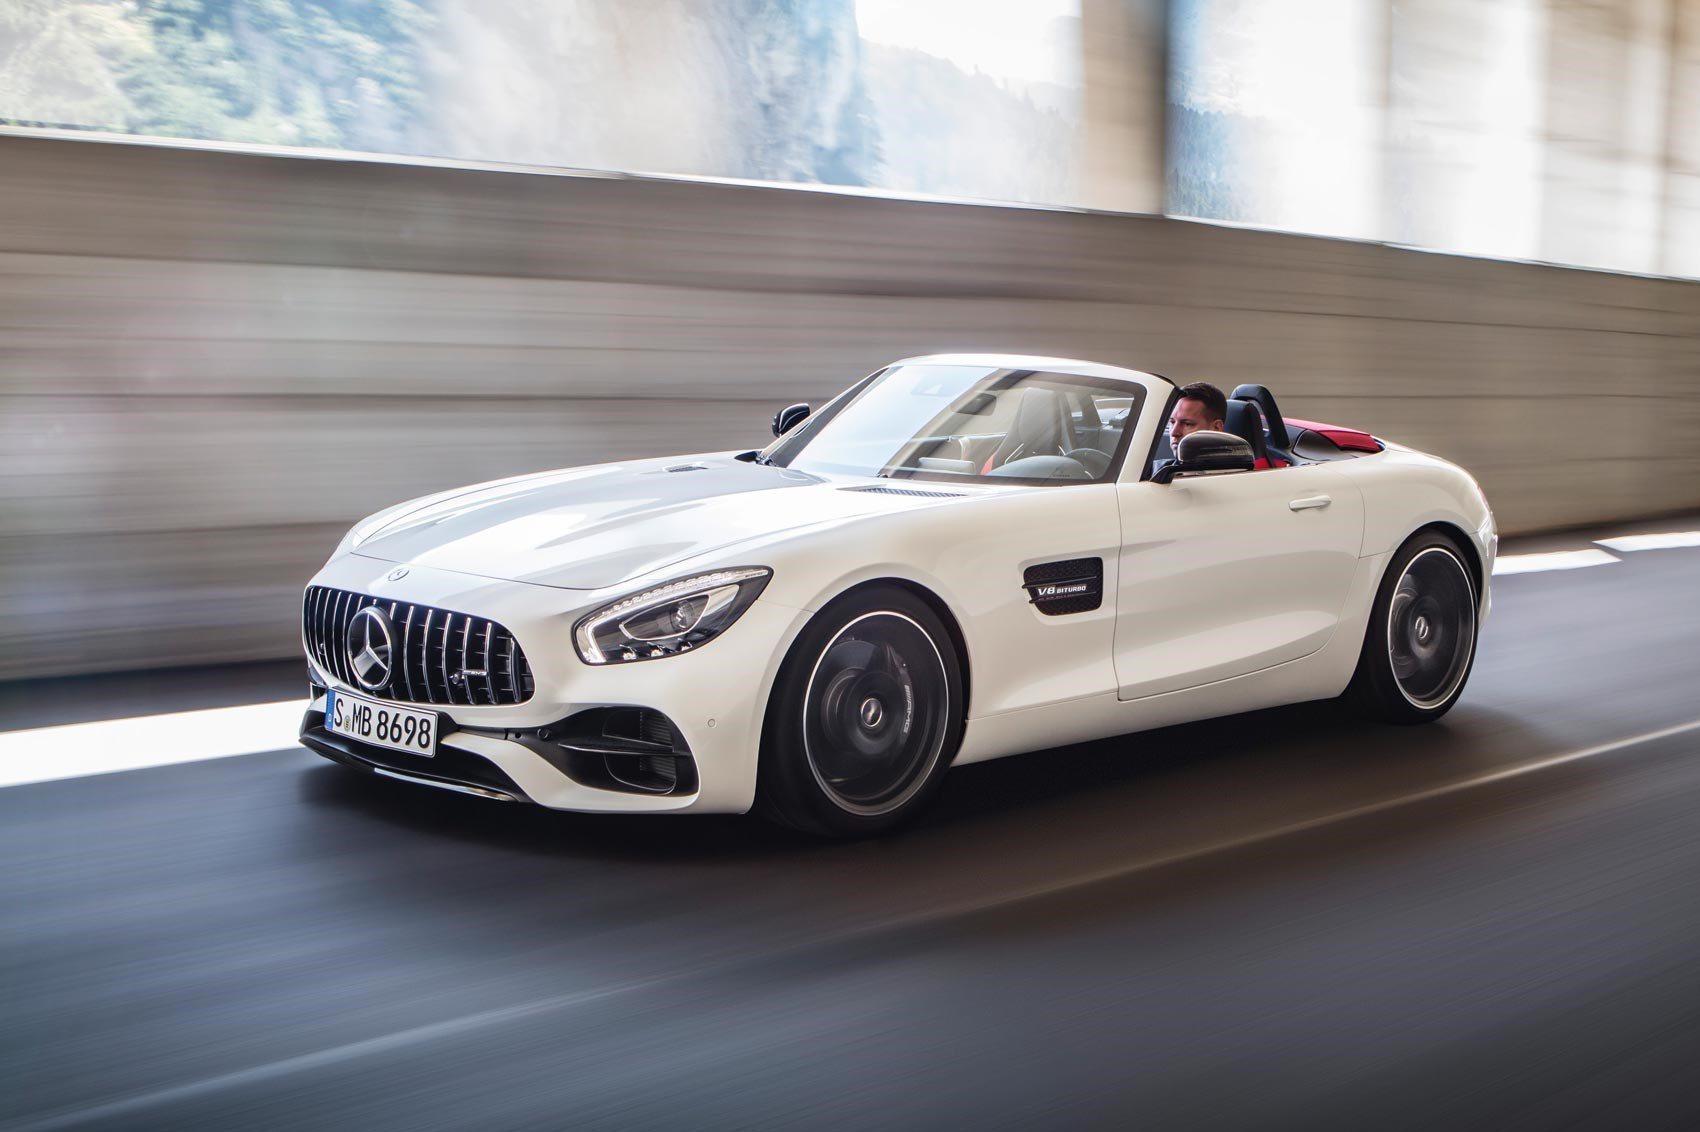 Amg Gt Mercedes Amg Reveals Gt Roadster And Gt C Roadster By Car